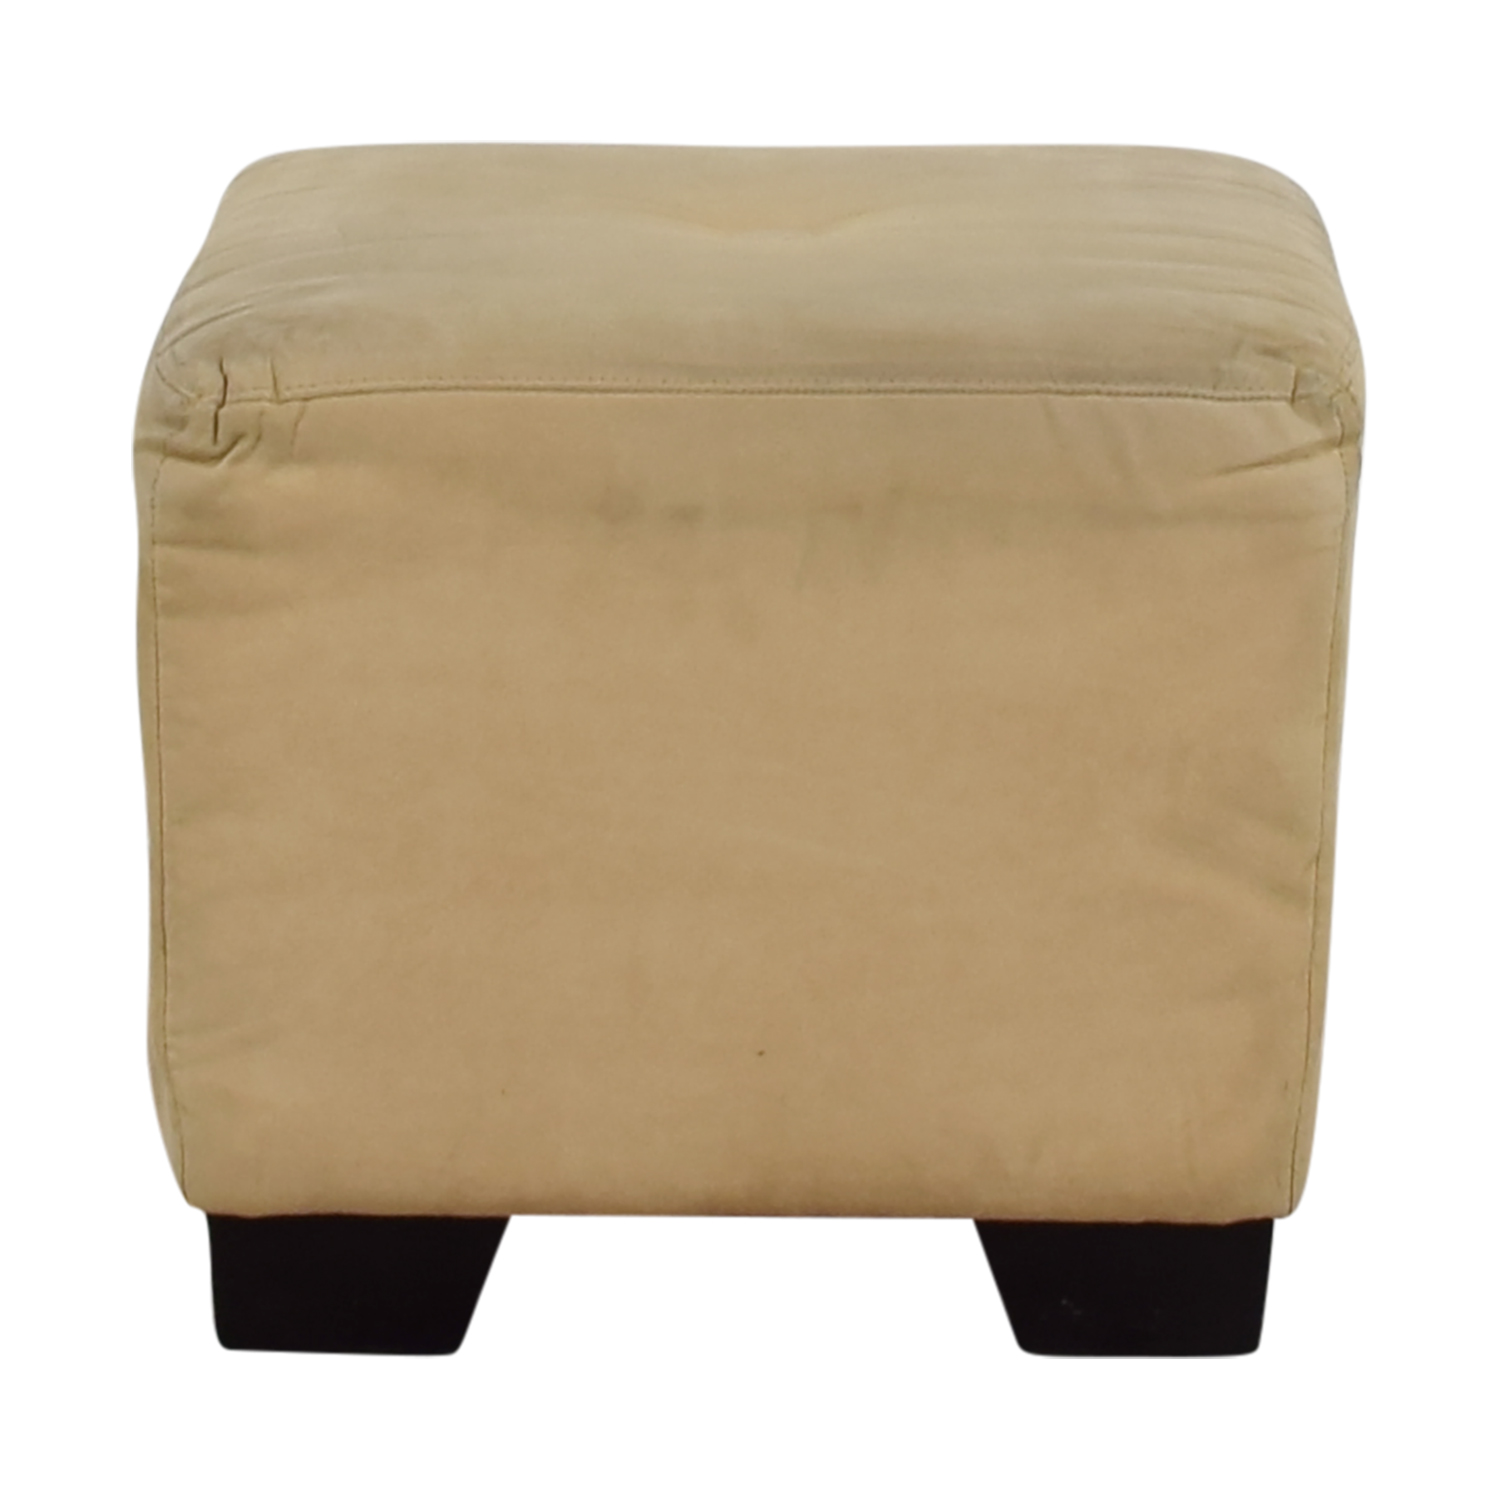 shop Sherrill Furniture Sherrill Furniture Beige Square Ottoman online